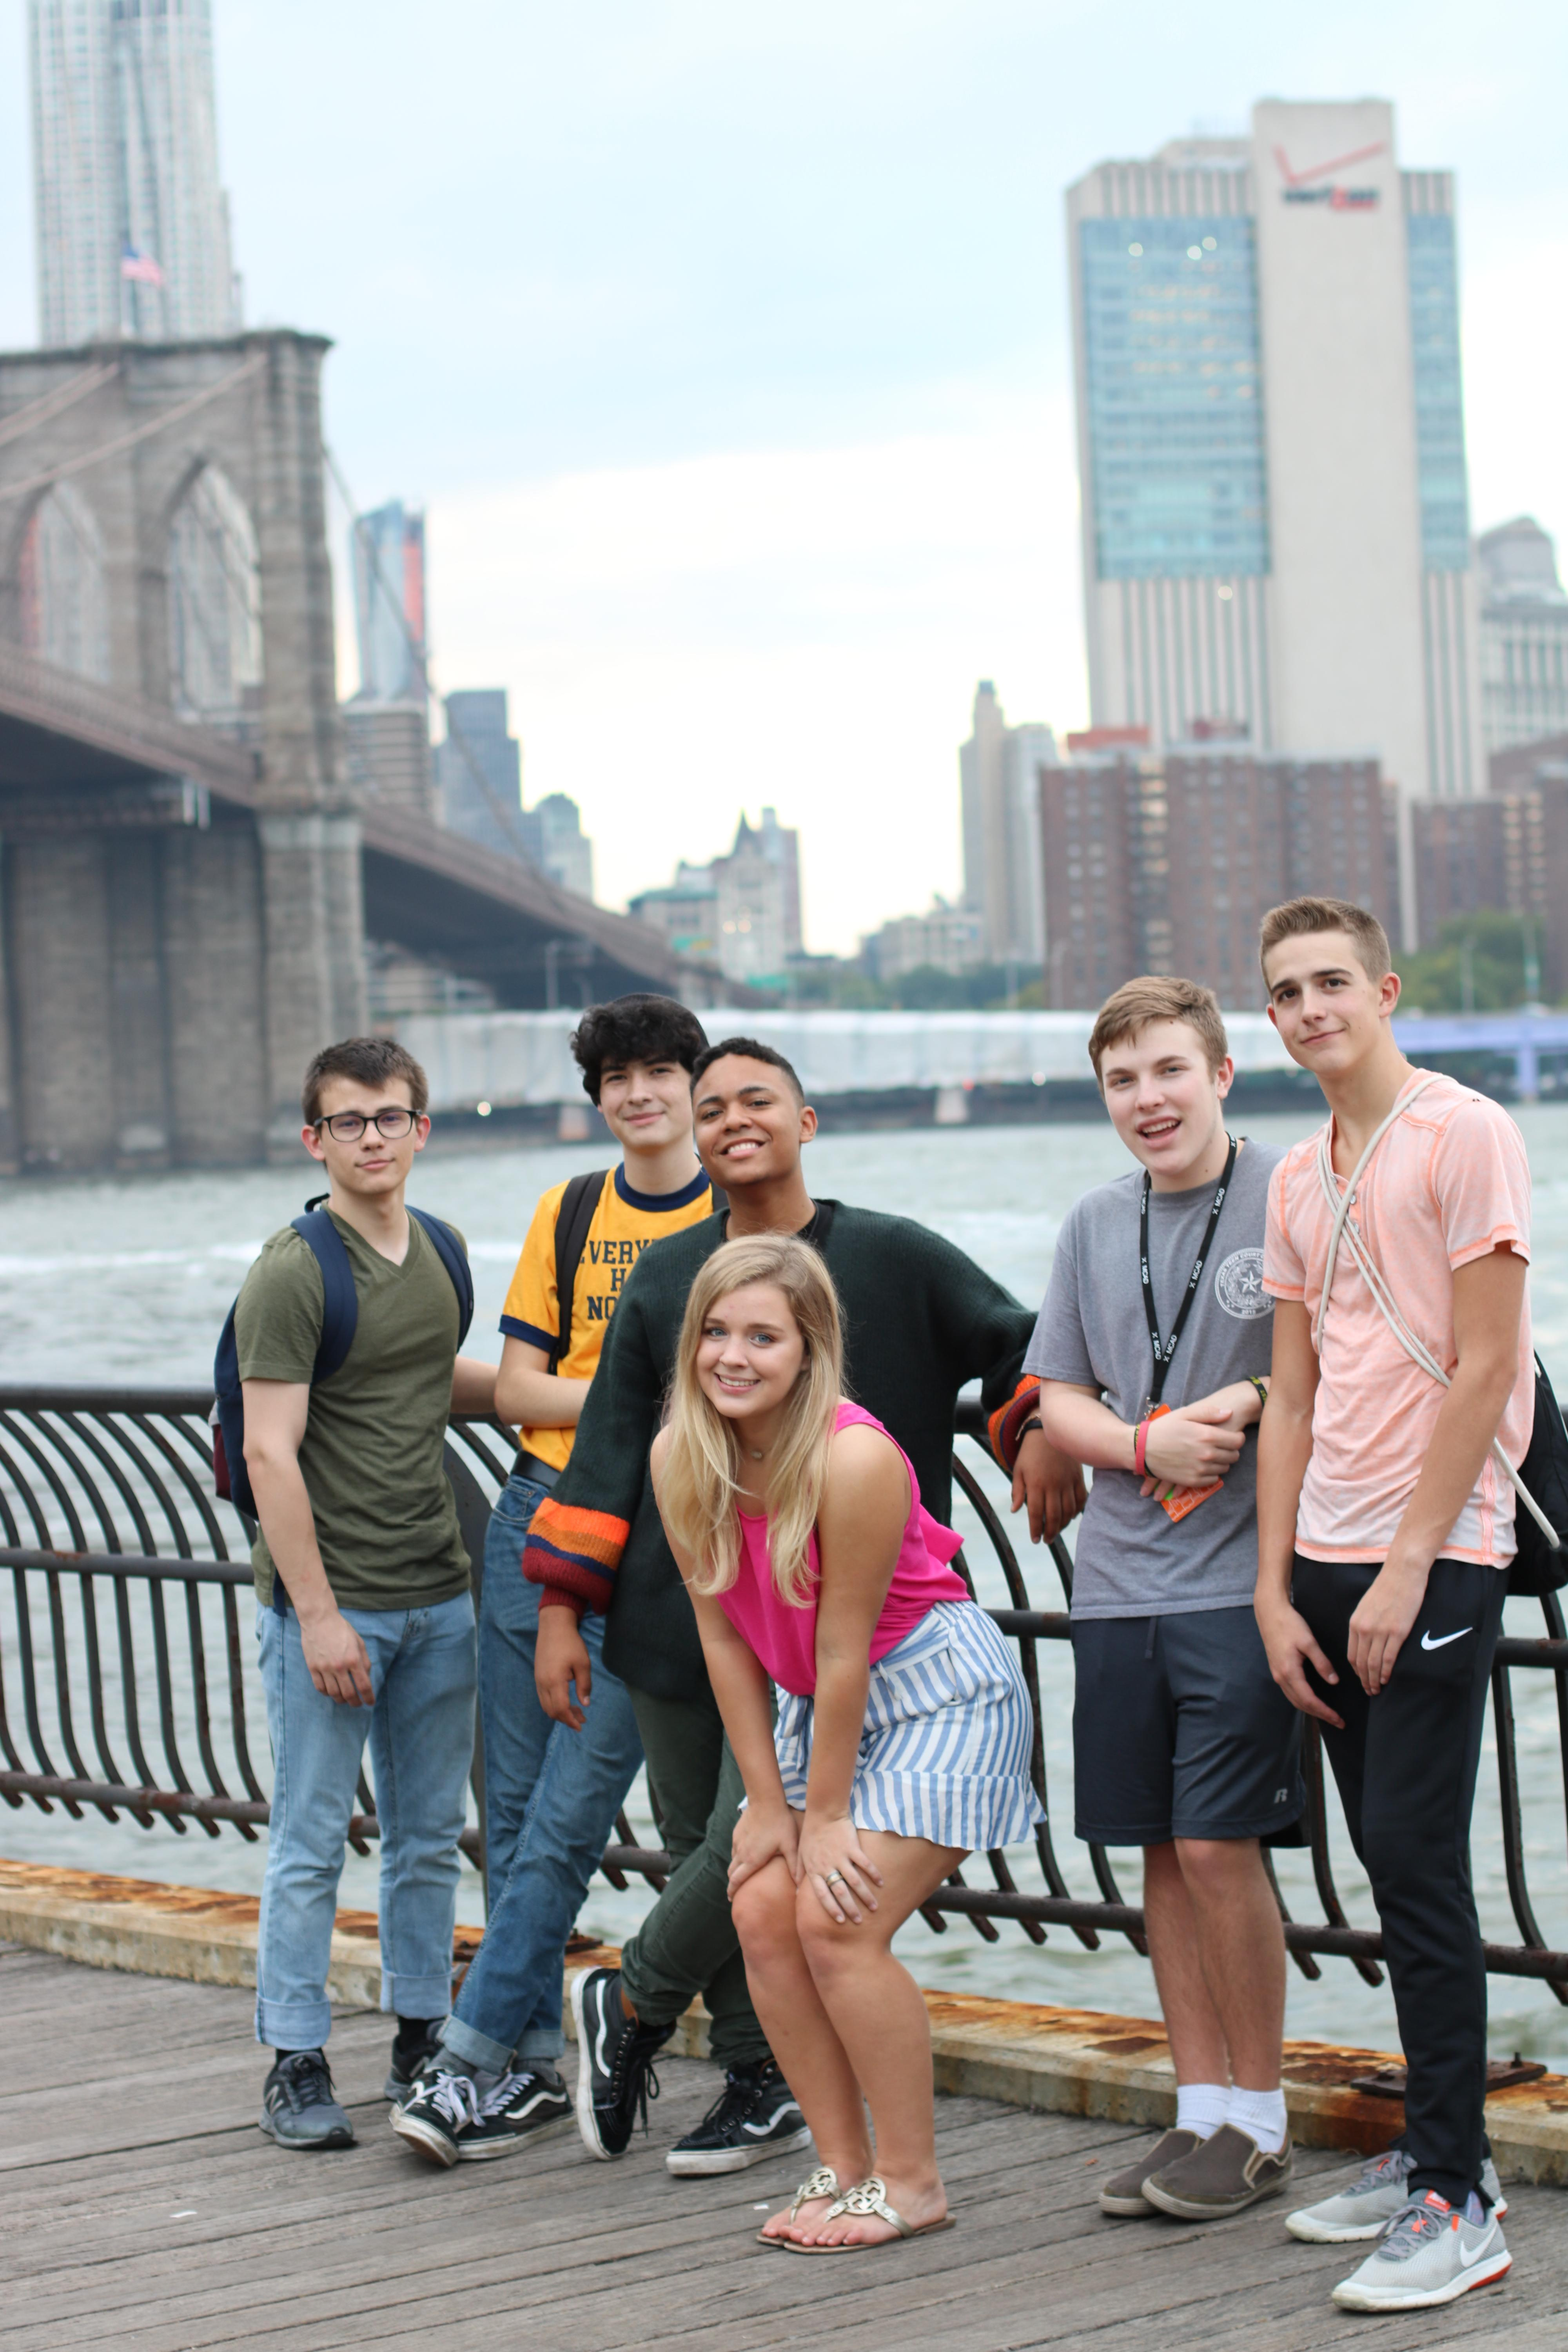 Brewer High School Audio/Video Production students Braxdon Cannon, Joel Seawright, Kiersten Hart, Marcus Martinez, Scott Ellis and Donnell Hale recently attended the All American High School Film Festival in New York City.